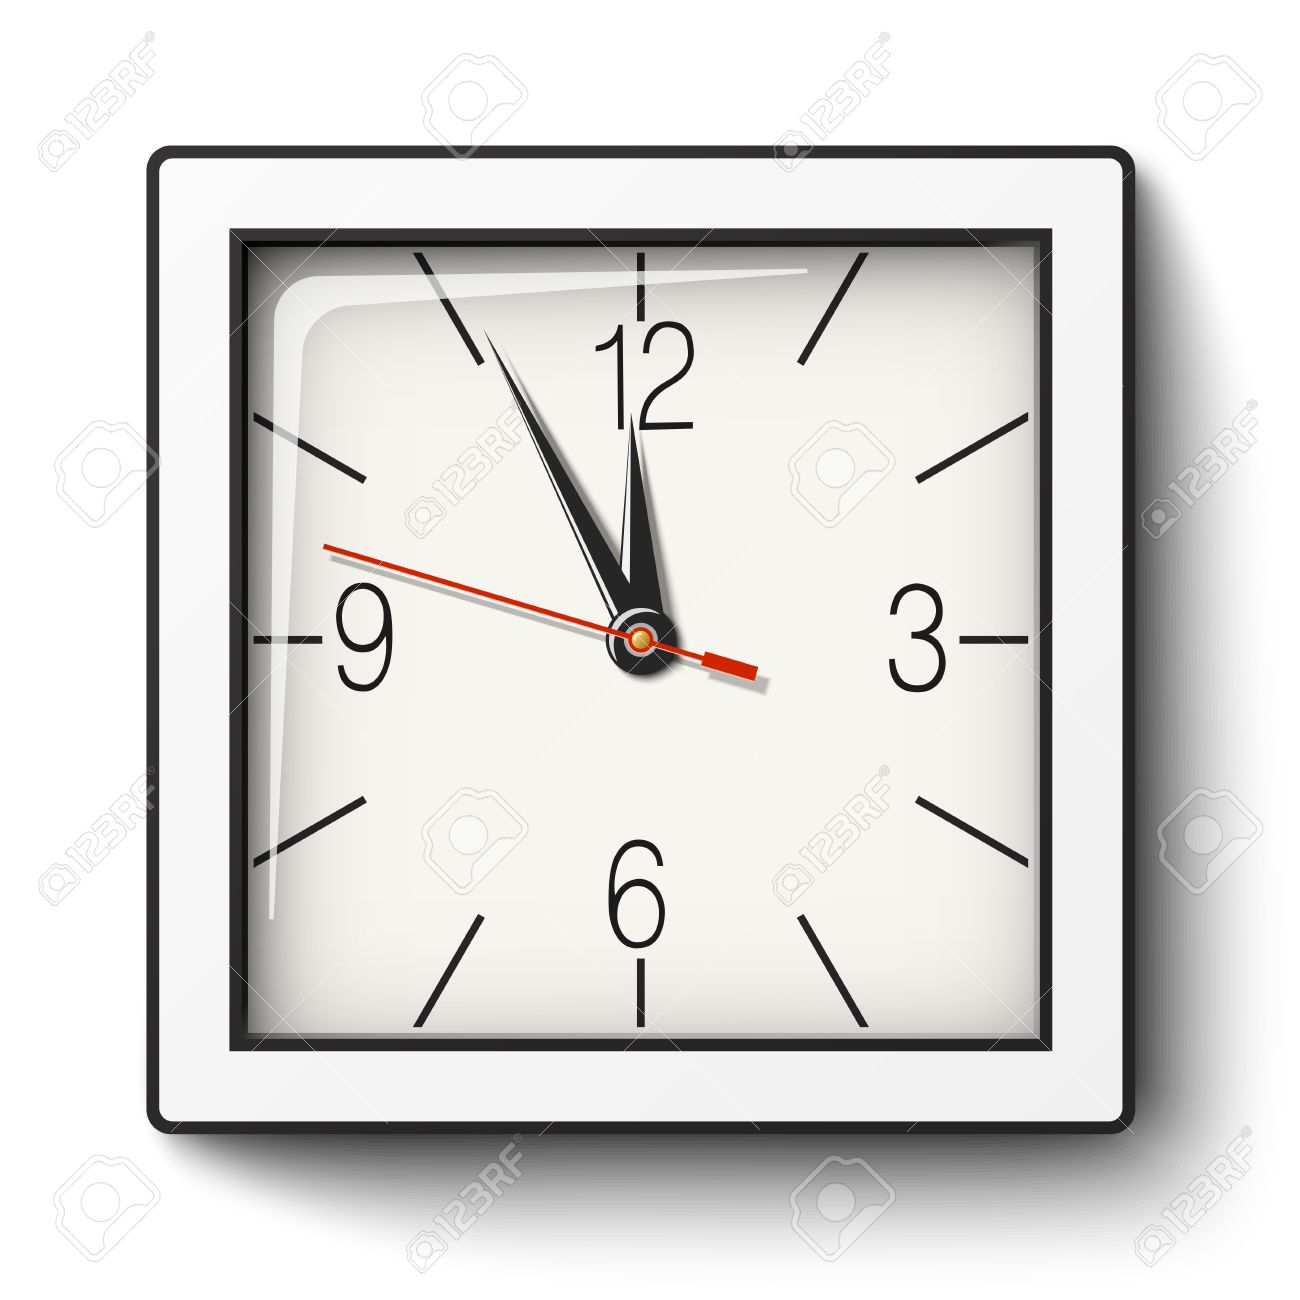 Square Wall Clock In White Body With Black Edging Royalty Free Cliparts Vectors And Stock Illustration Image 66949871